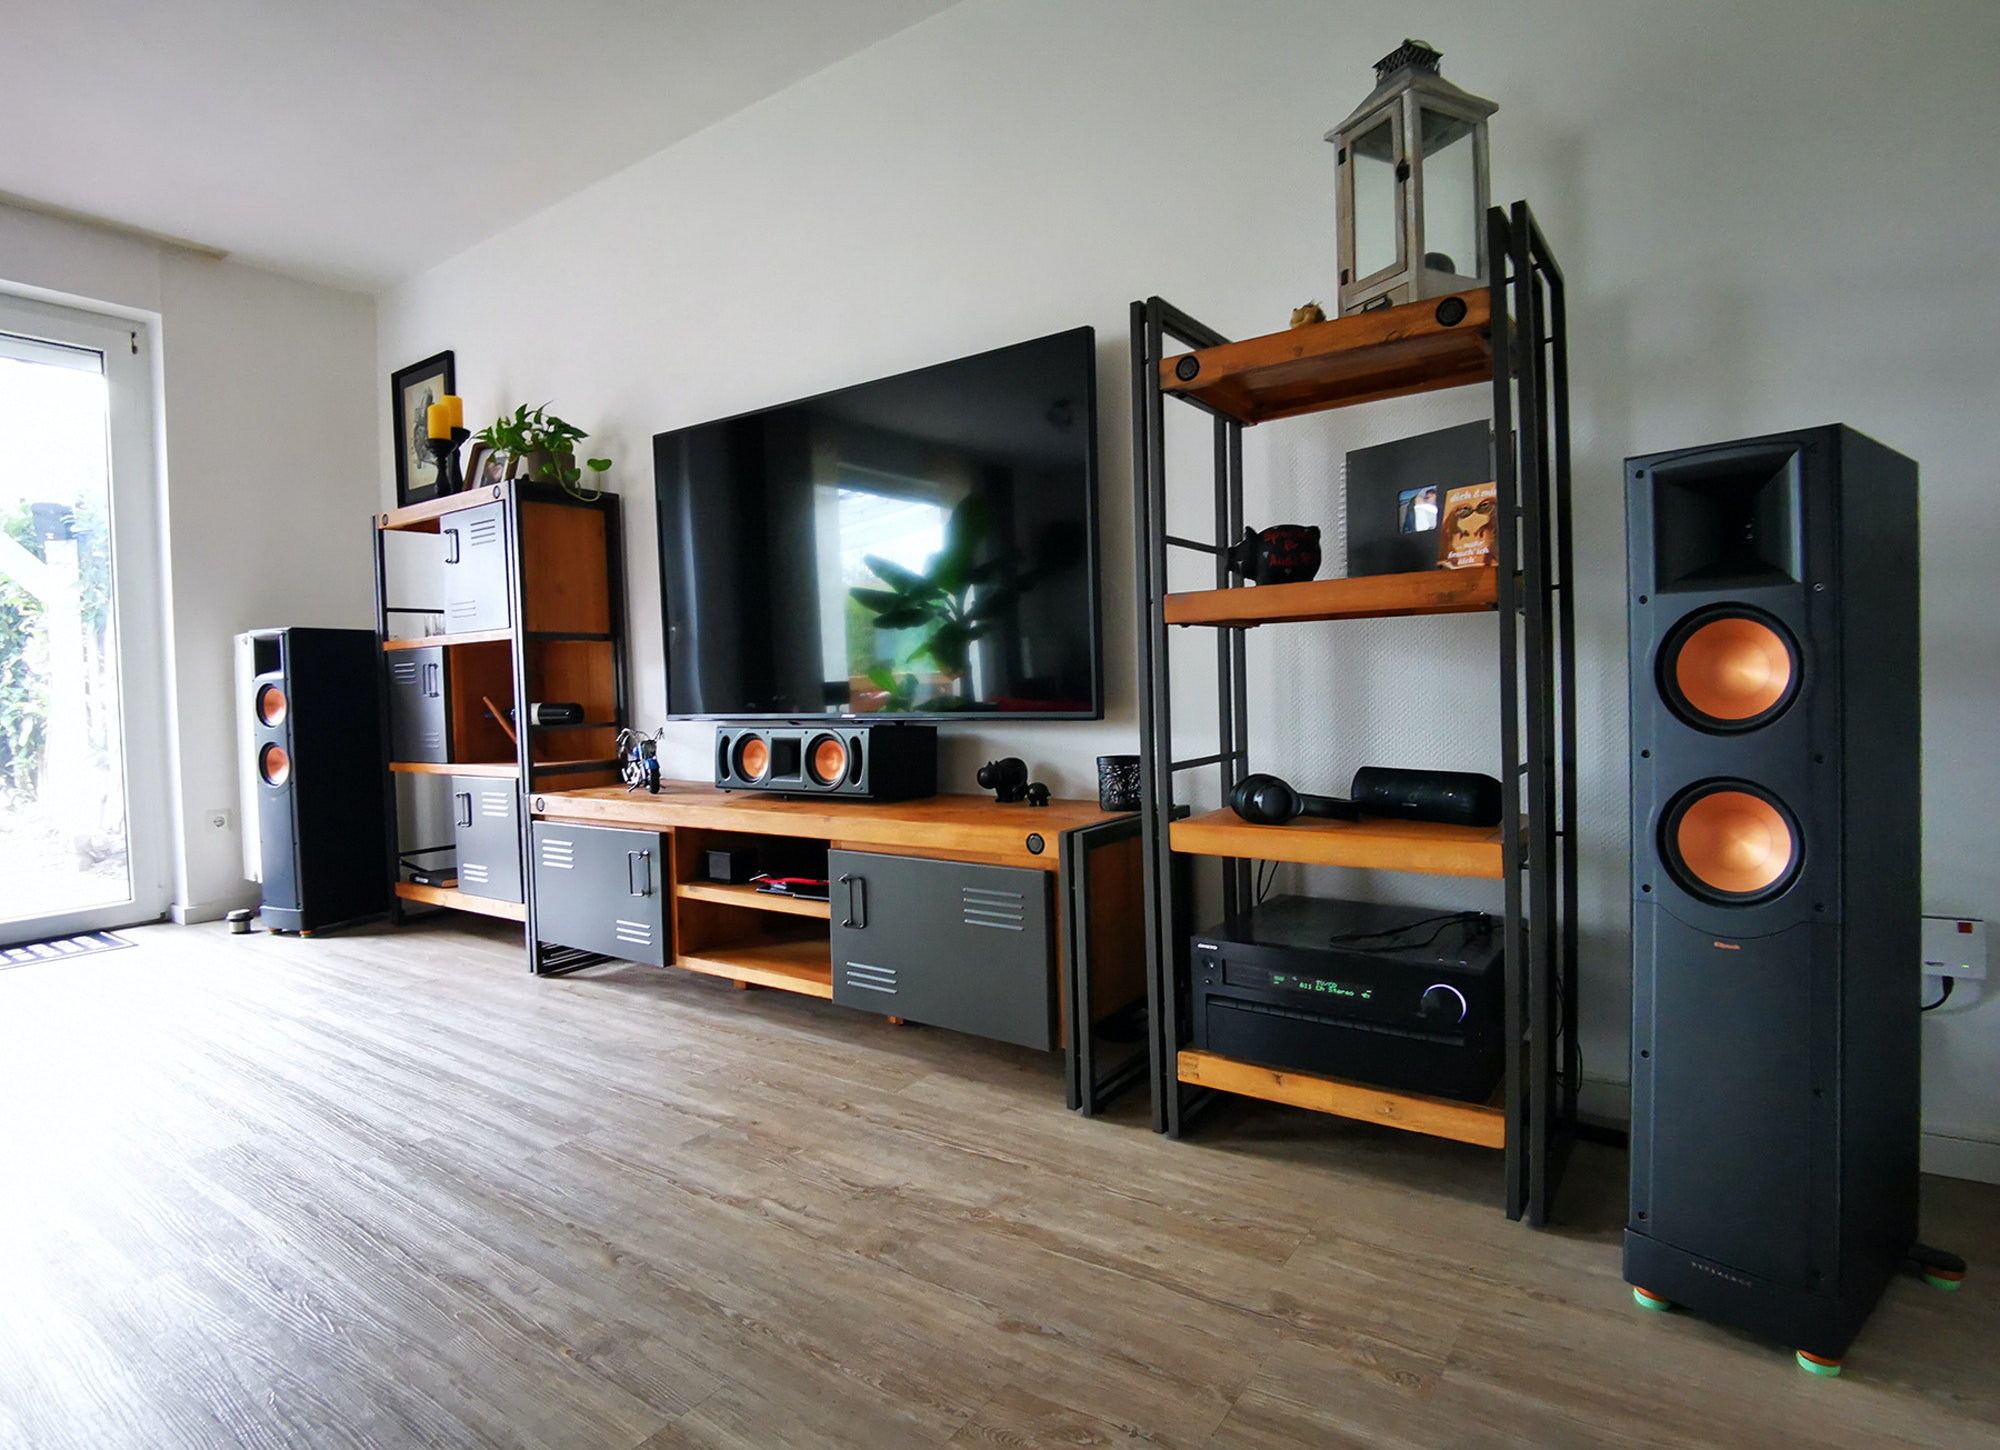 Somberg monday showcase klipsch home theater in living room